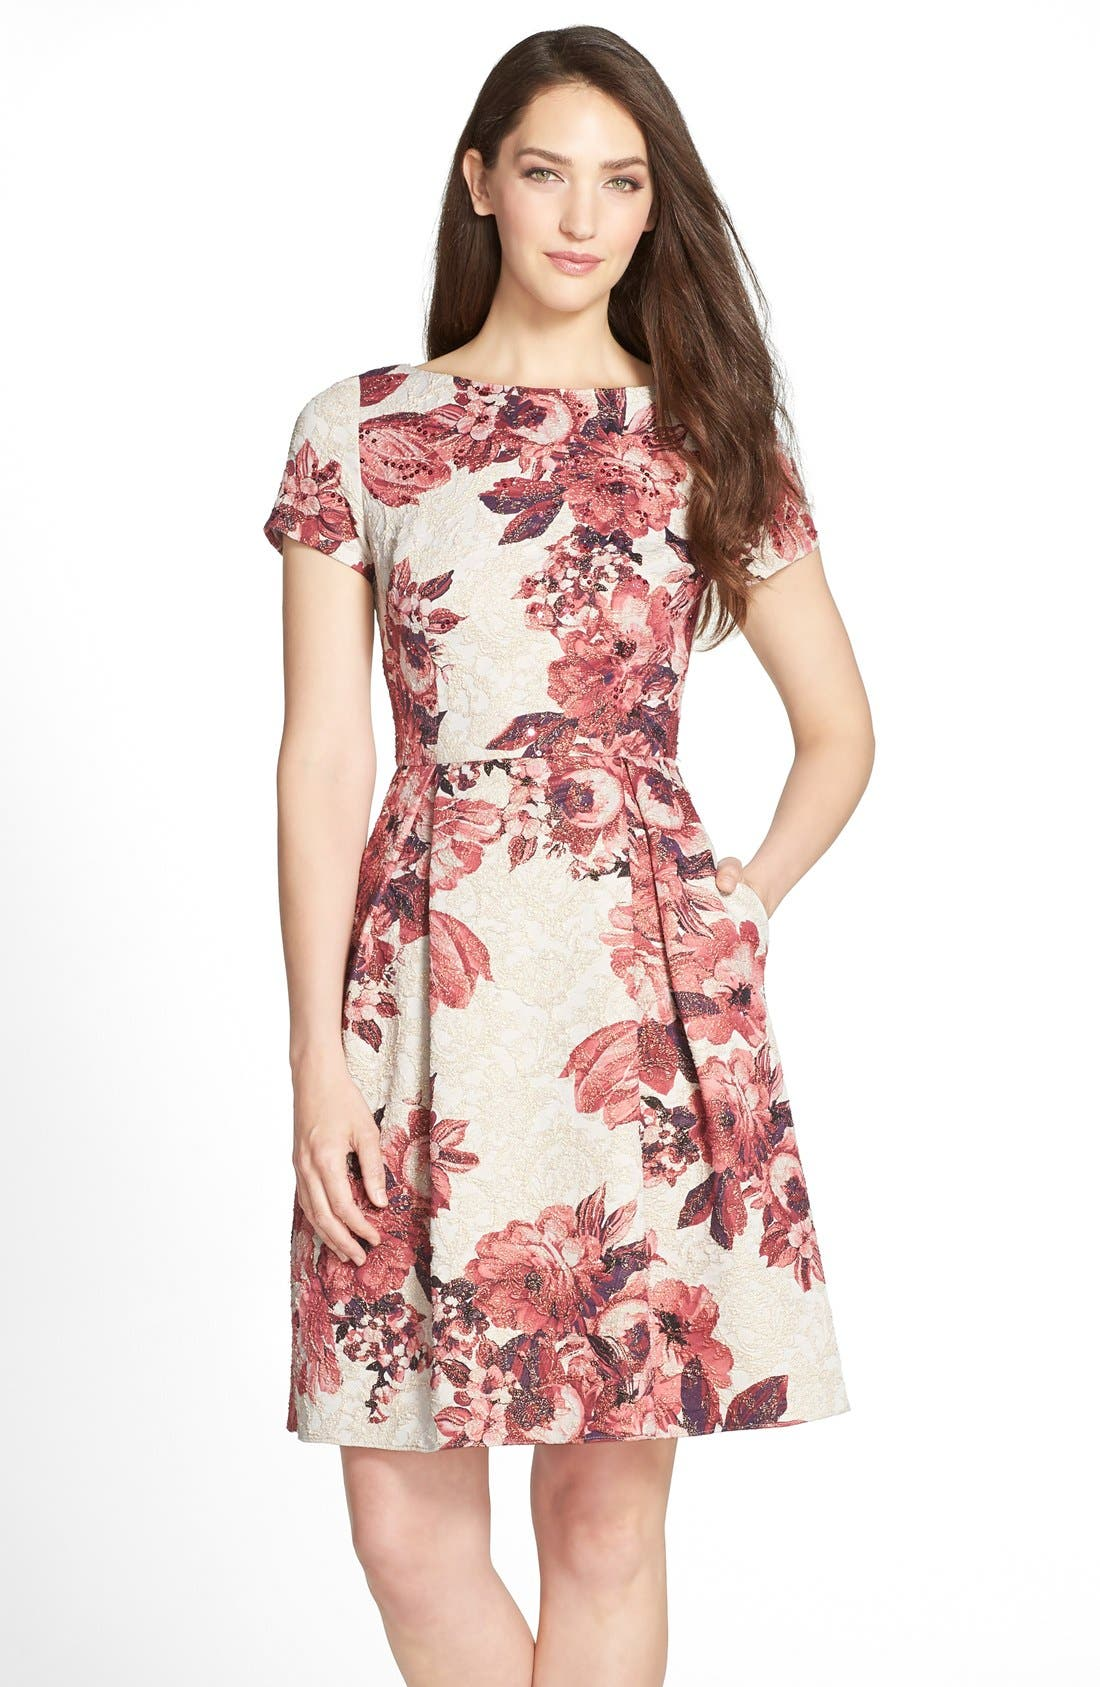 Main Image - Adrianna Papell Floral Matelassé Fit & Flare Dress (Regular & Petite)